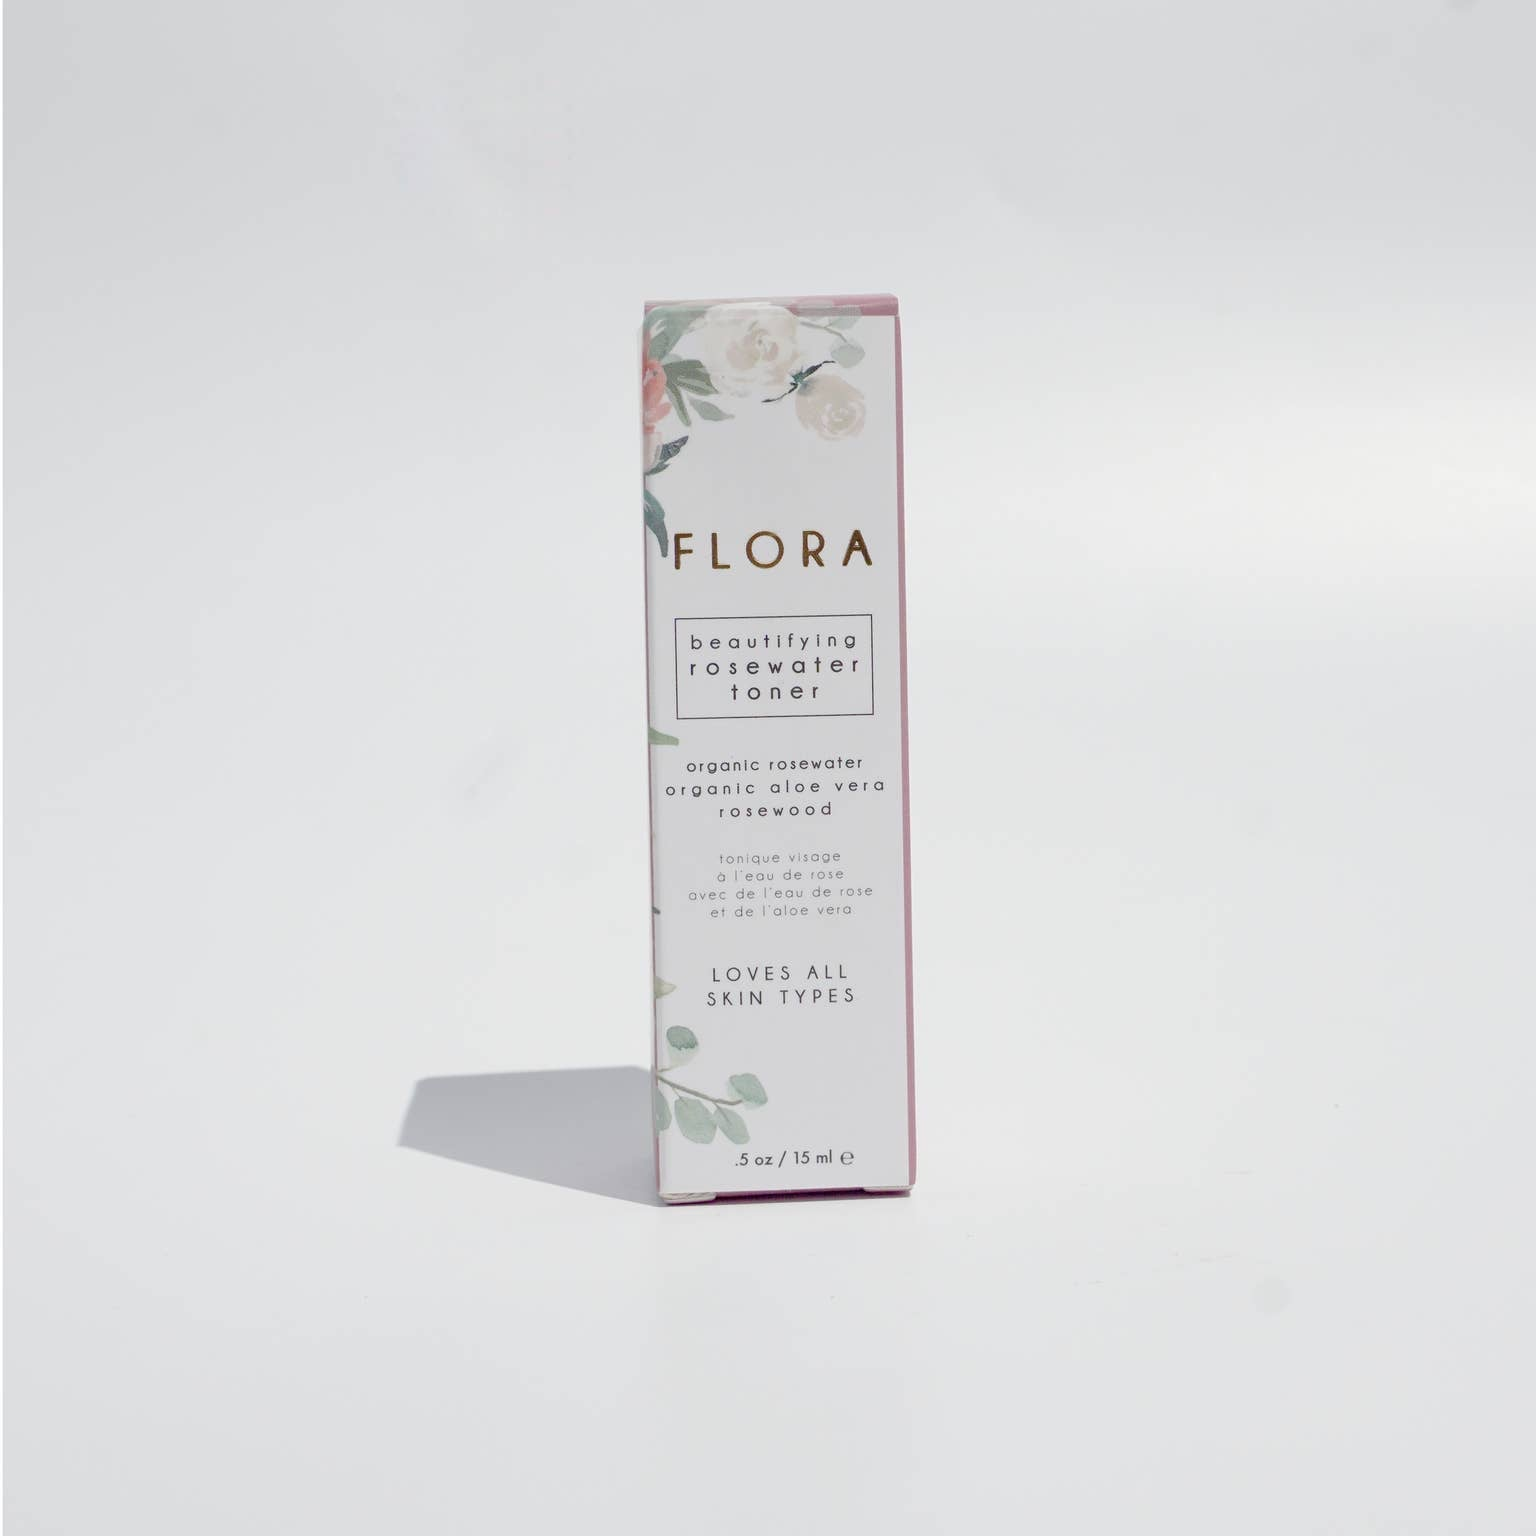 FLORA: Organic Rosewater Toner by Honey Belle